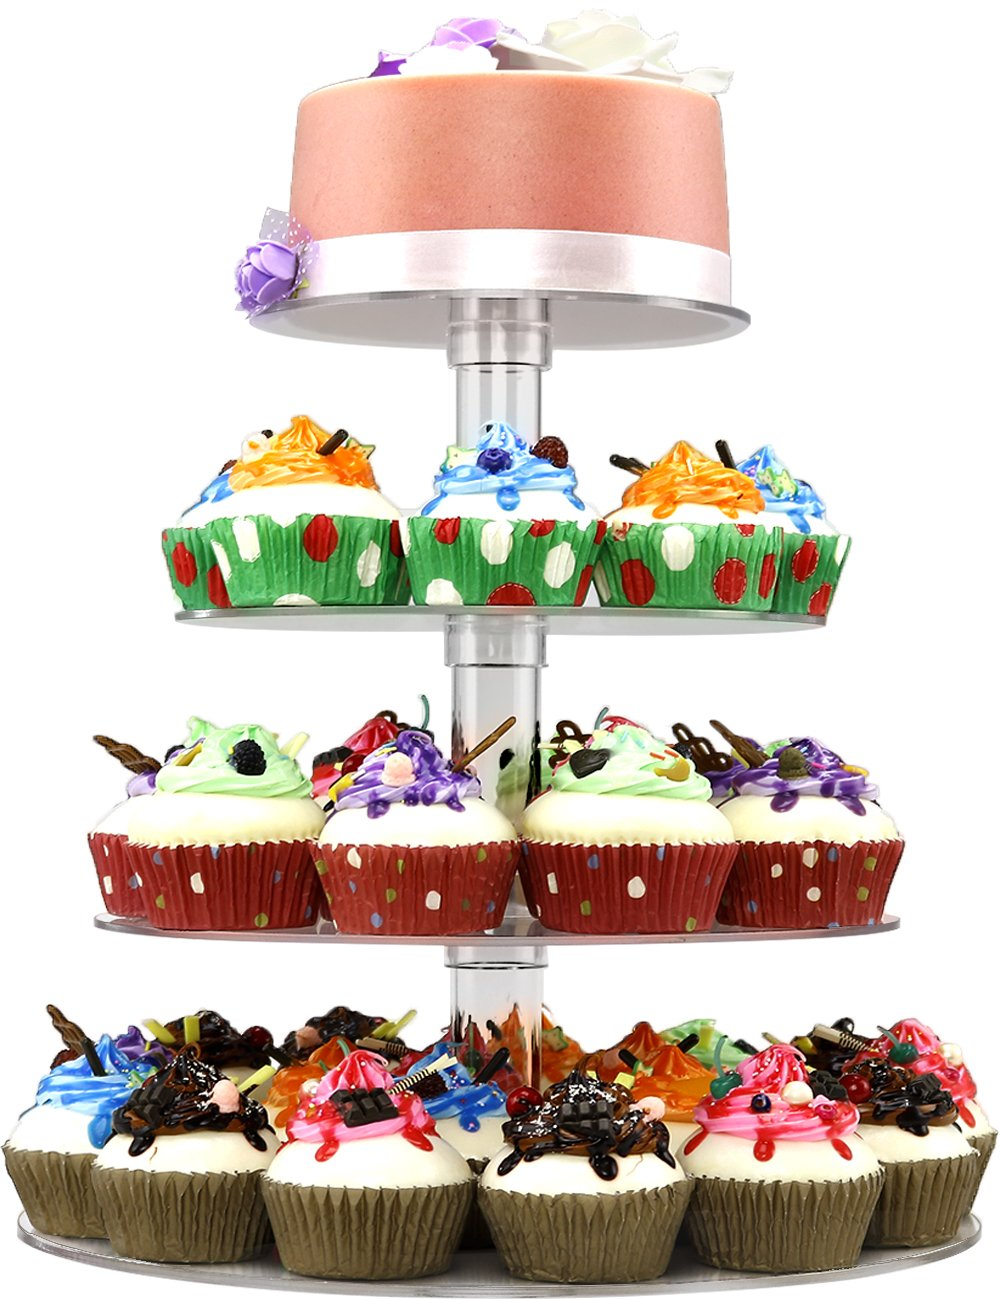 DYCacrlic Acrylic 4-Tier Square Stacked Party Cupcake Stand, Dessert Holders Cupcake Tree - Tiered Cake Stand/Cupcake Tower (4 Tier Round Tube)